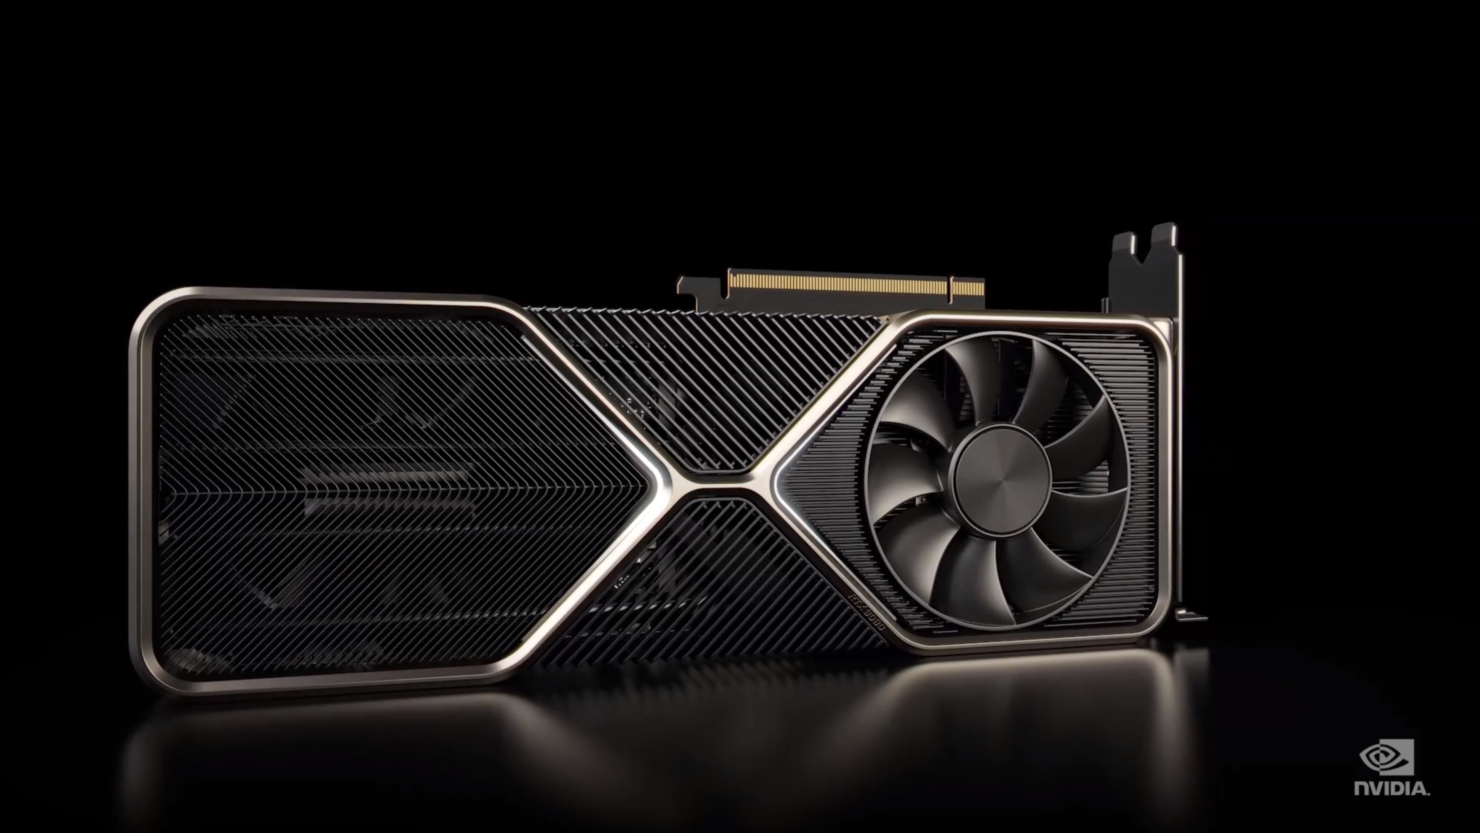 nvidia-to-launch-geforce-rtx-30-super-'ampere-refresh'-in-january-2022,-geforce-rtx-40-'ada-lovelace'-gpus-in-october-2022